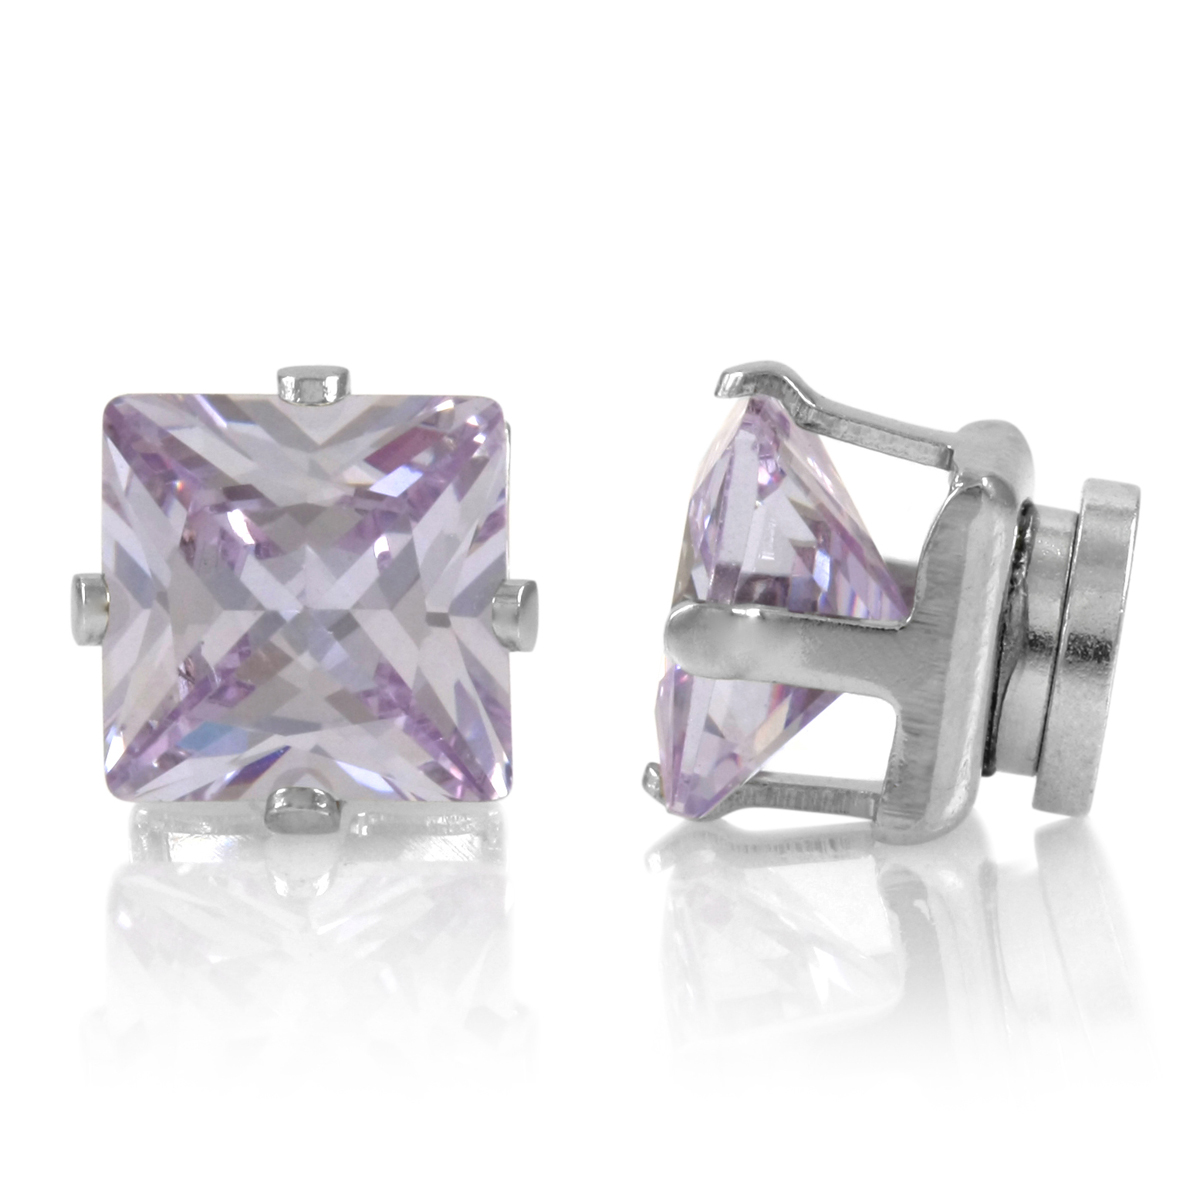 Brinkley's Square Cut Cz Non Pierced Magnetic Earrings  6mm Lavender